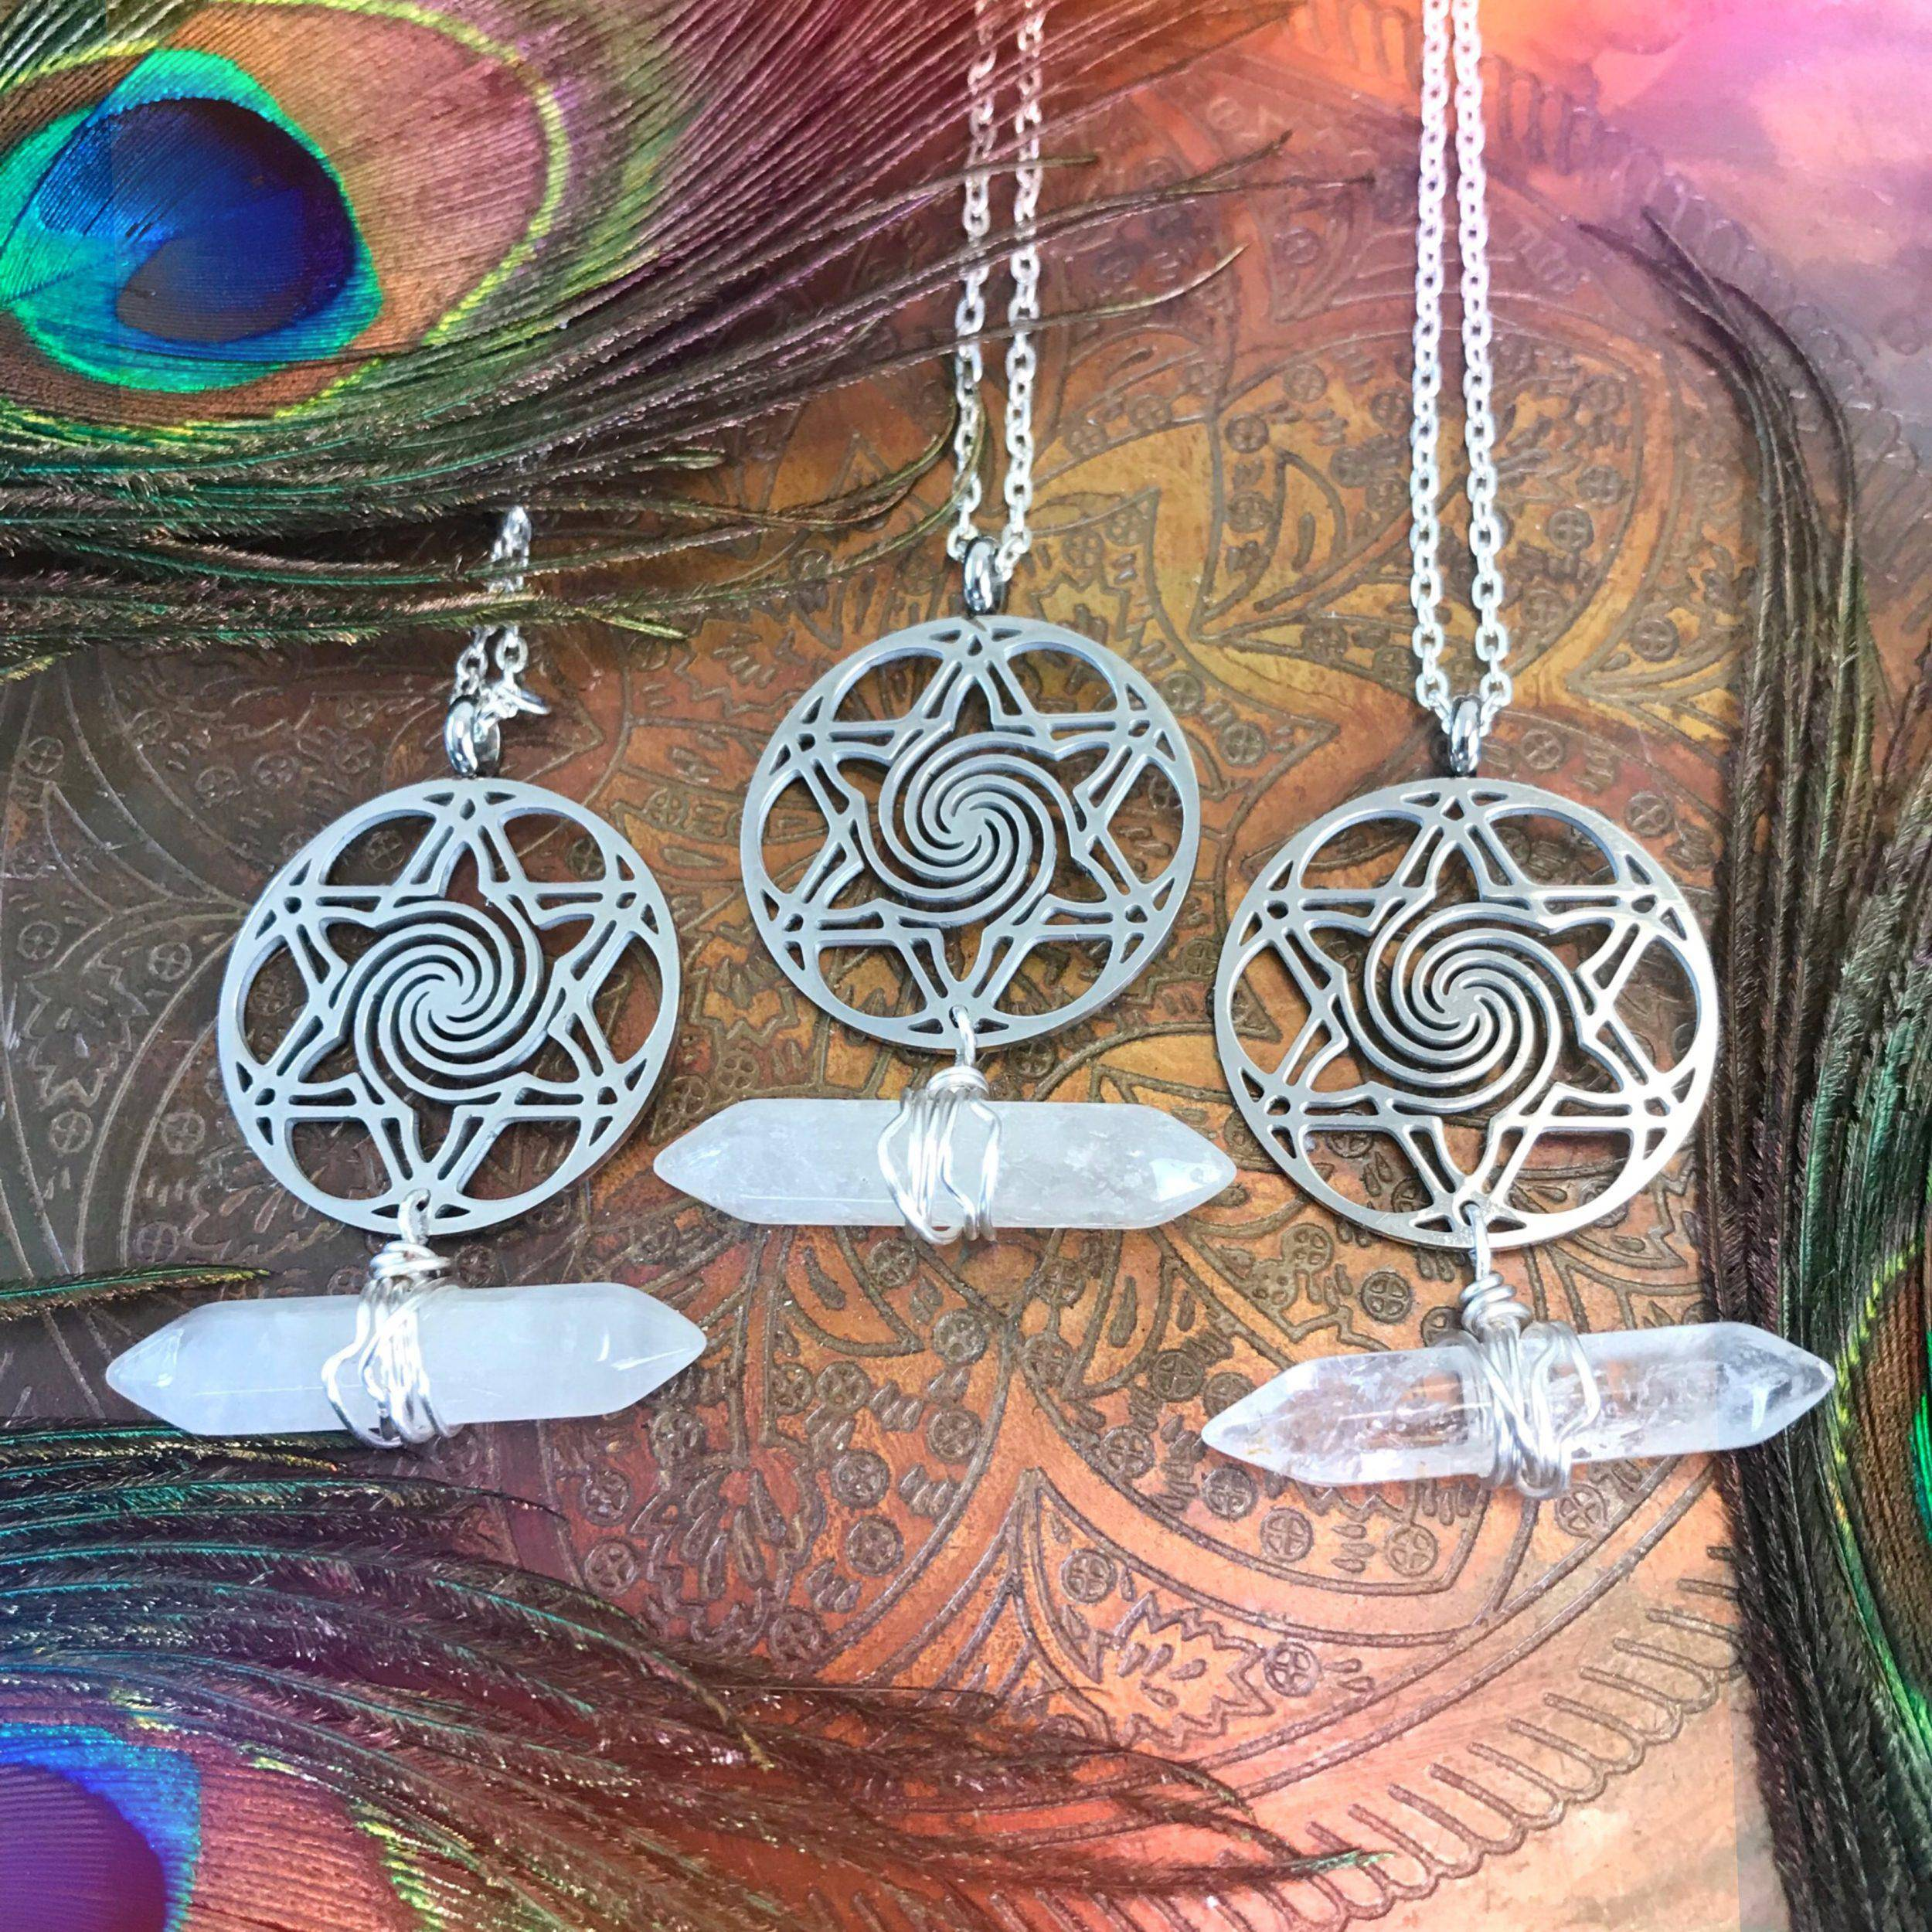 Light_Code_Activation_Amulet_1of2_8_10